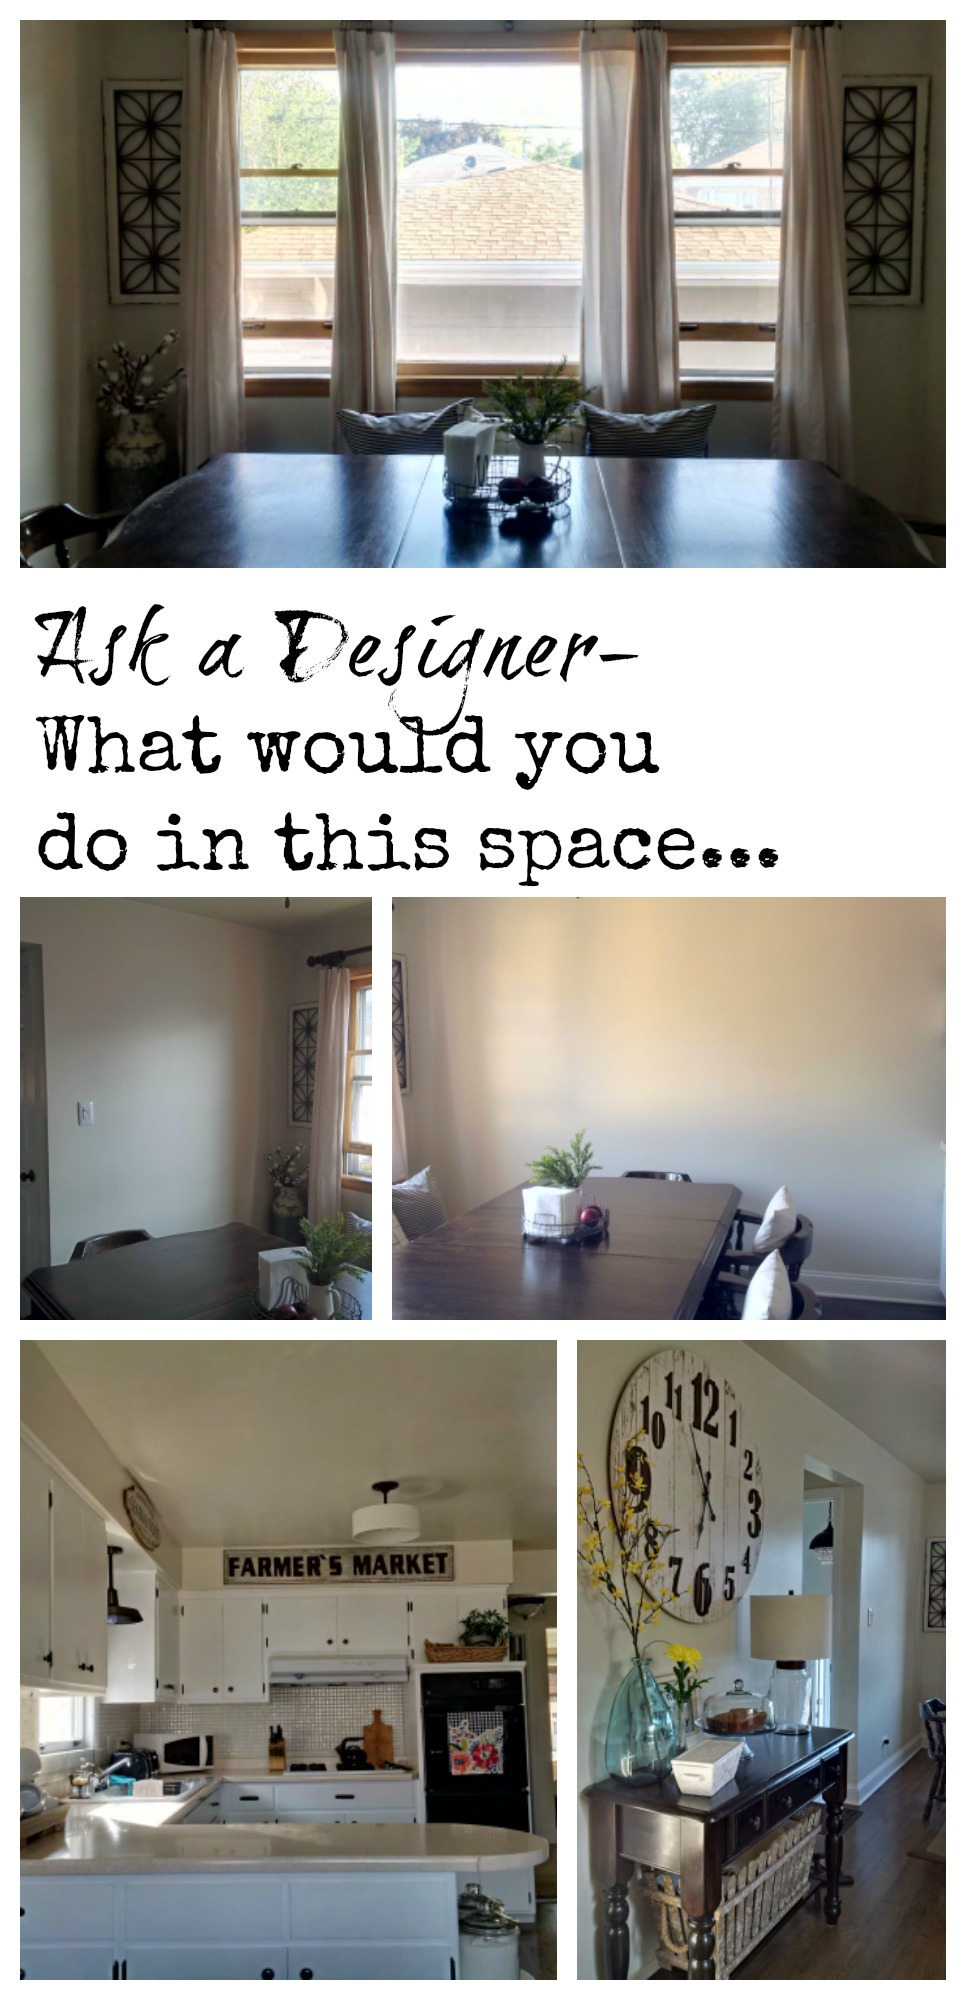 Ask a Designer -Help! What should I Put on My Walls